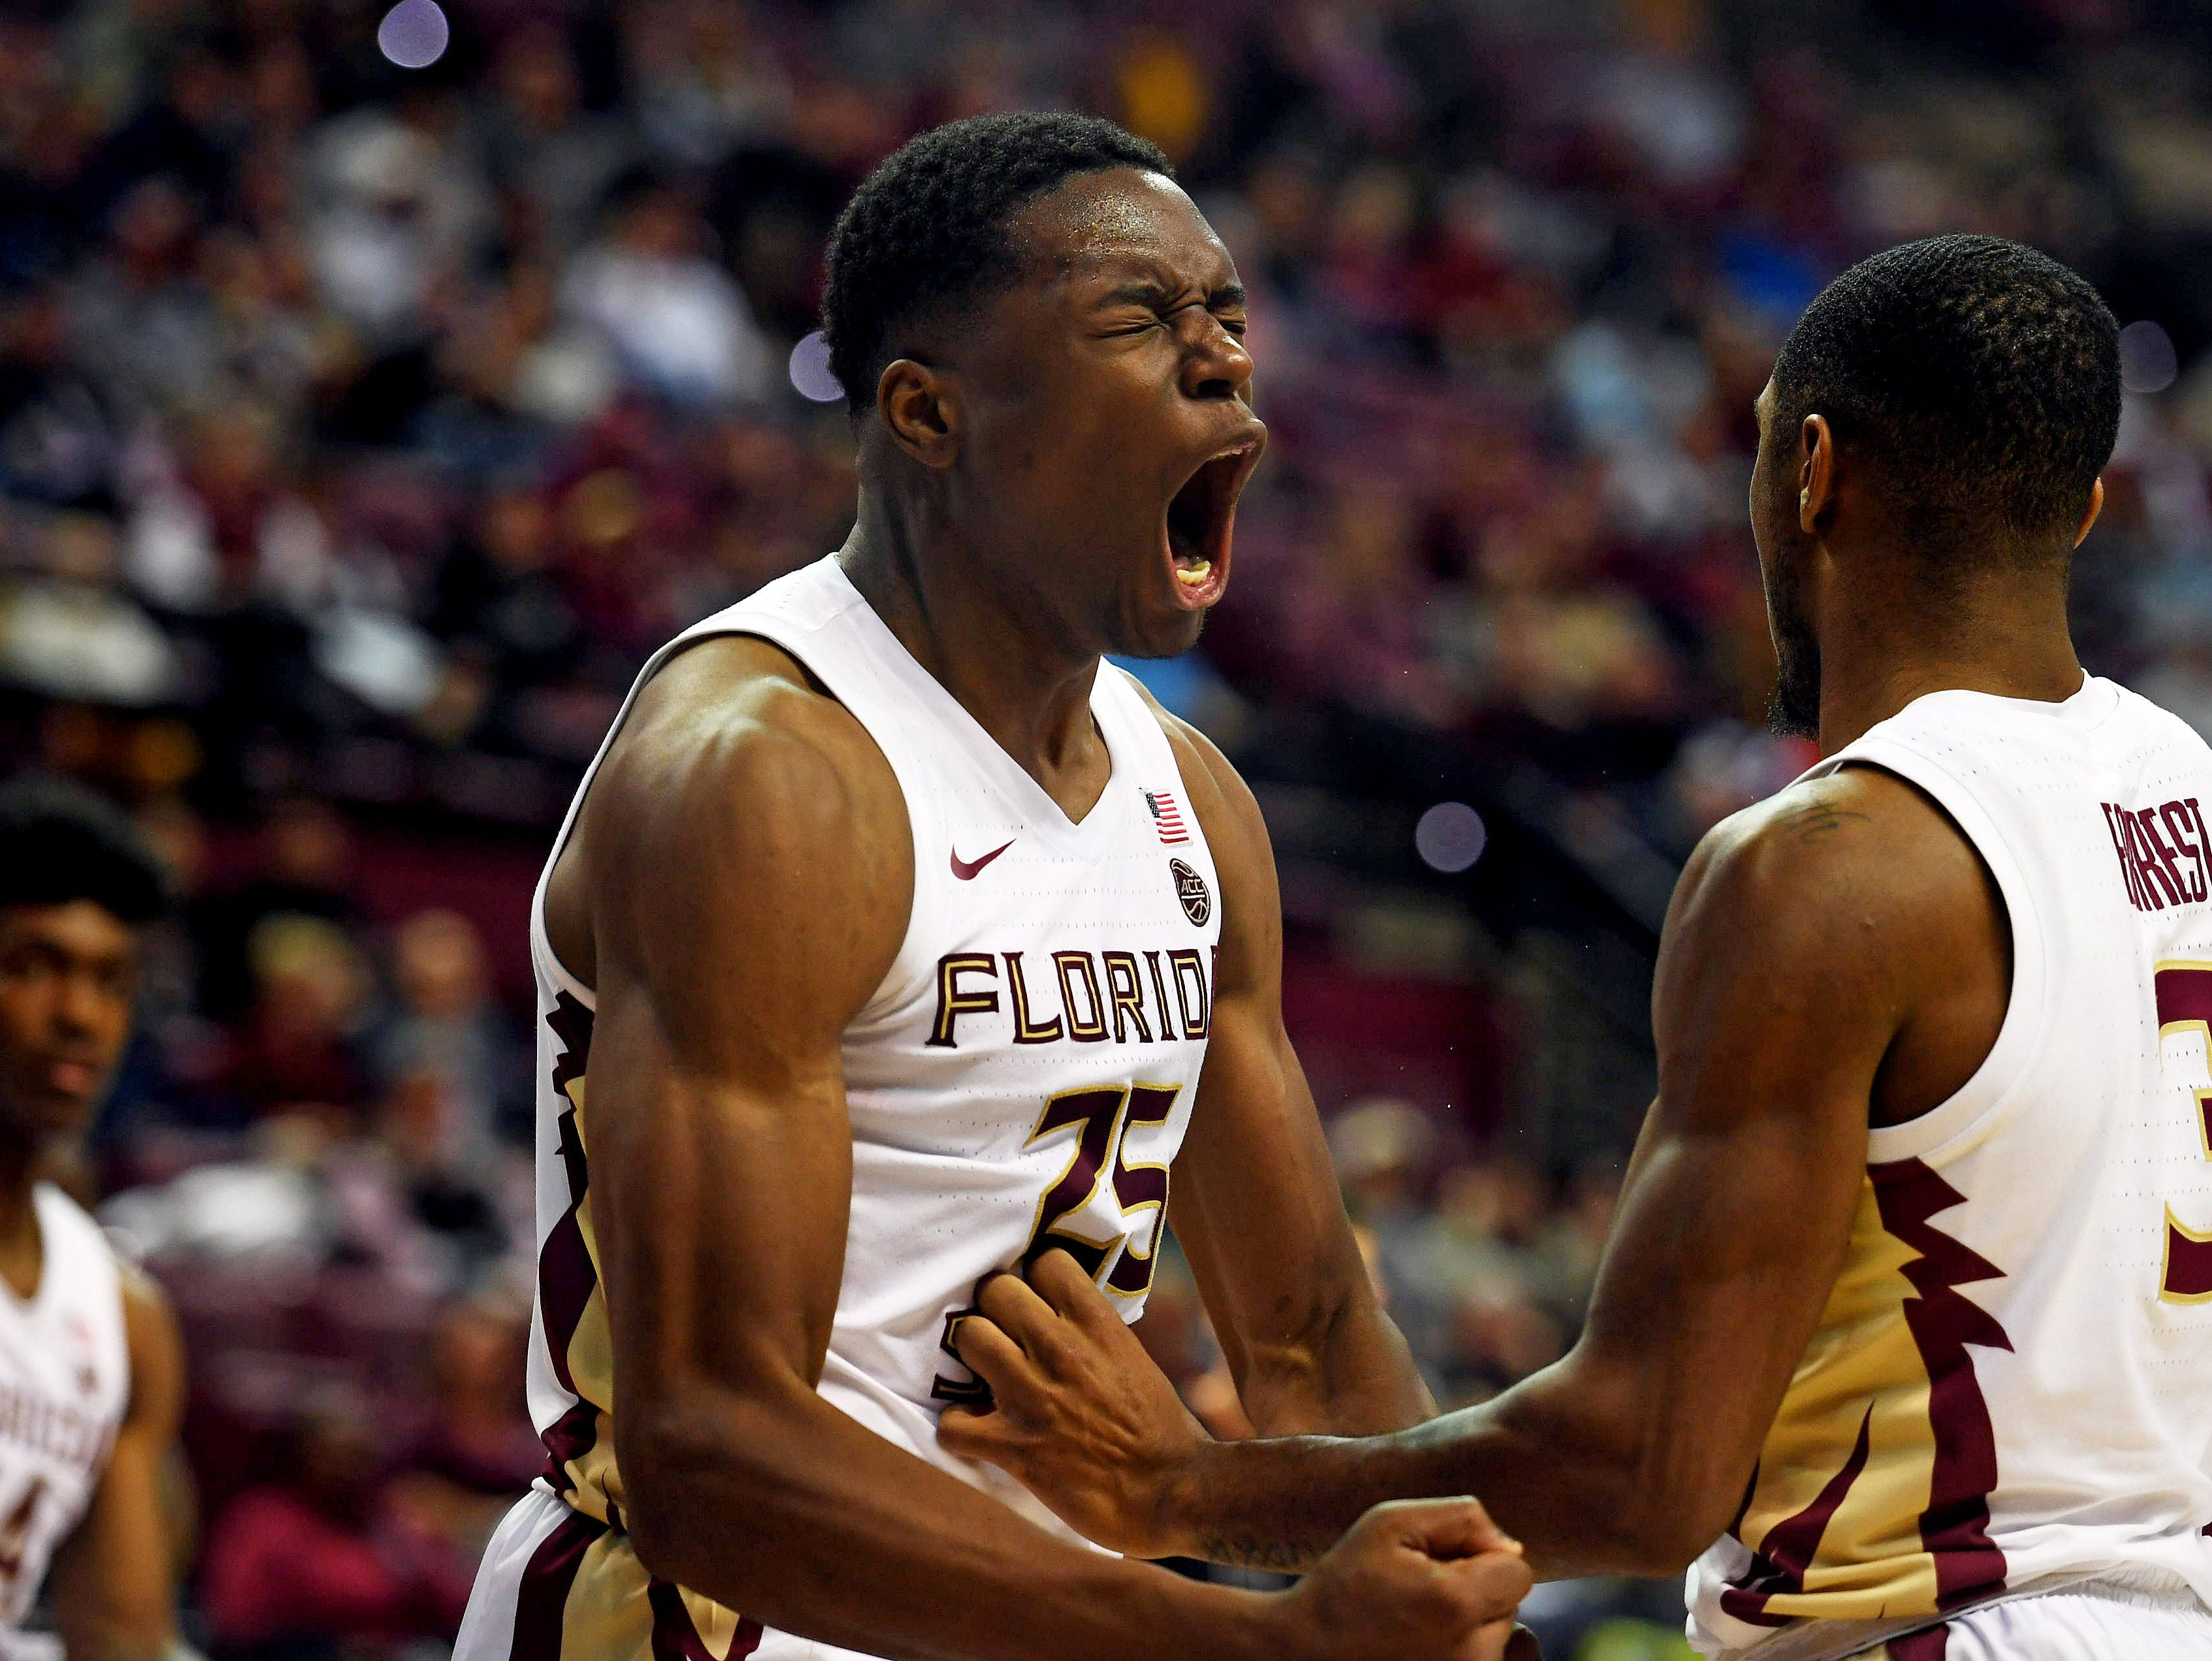 Jan 9, 2019; Tallahassee, FL, USA; Florida State Seminoles forward Mfiondu Kabengele (25) reacts during the second half against the Miami Hurricanes  at Donald L. Tucker Center. Mandatory Credit: Melina Myers-USA TODAY Sports